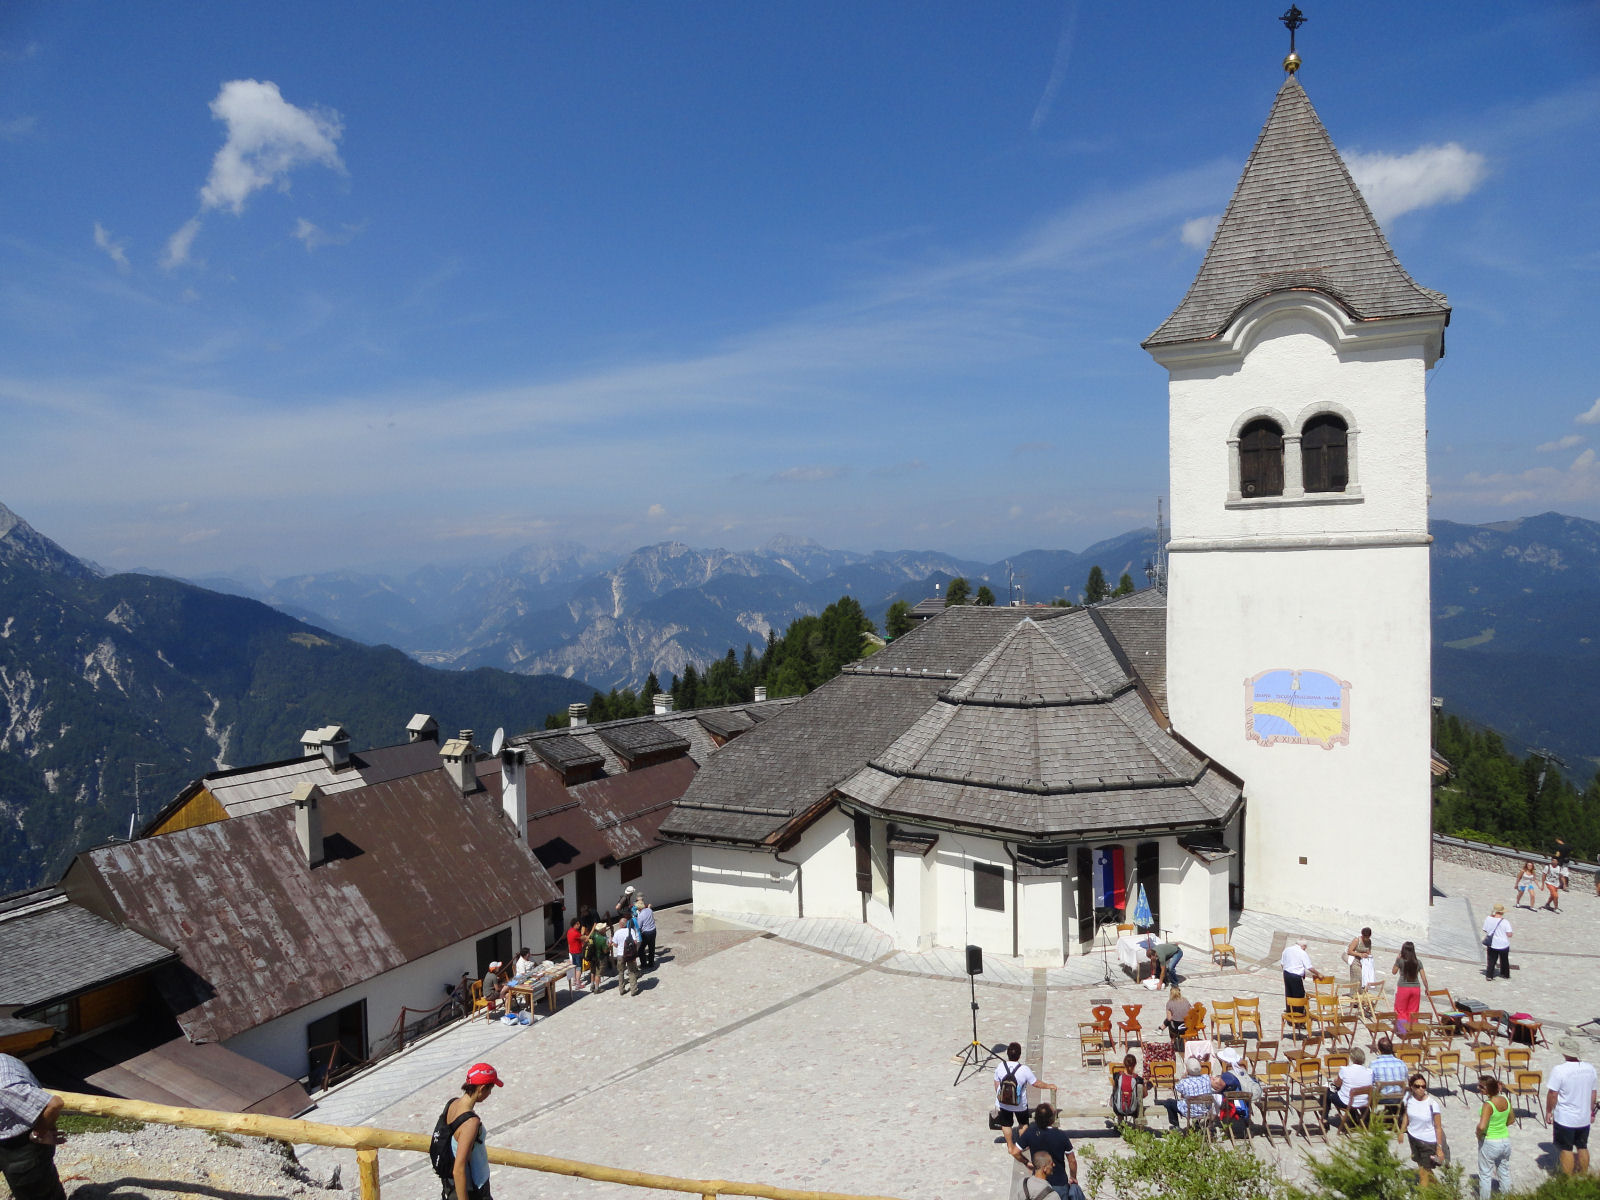 Mount Lussari with the pilgrimage church Santa Maria In Excelsis